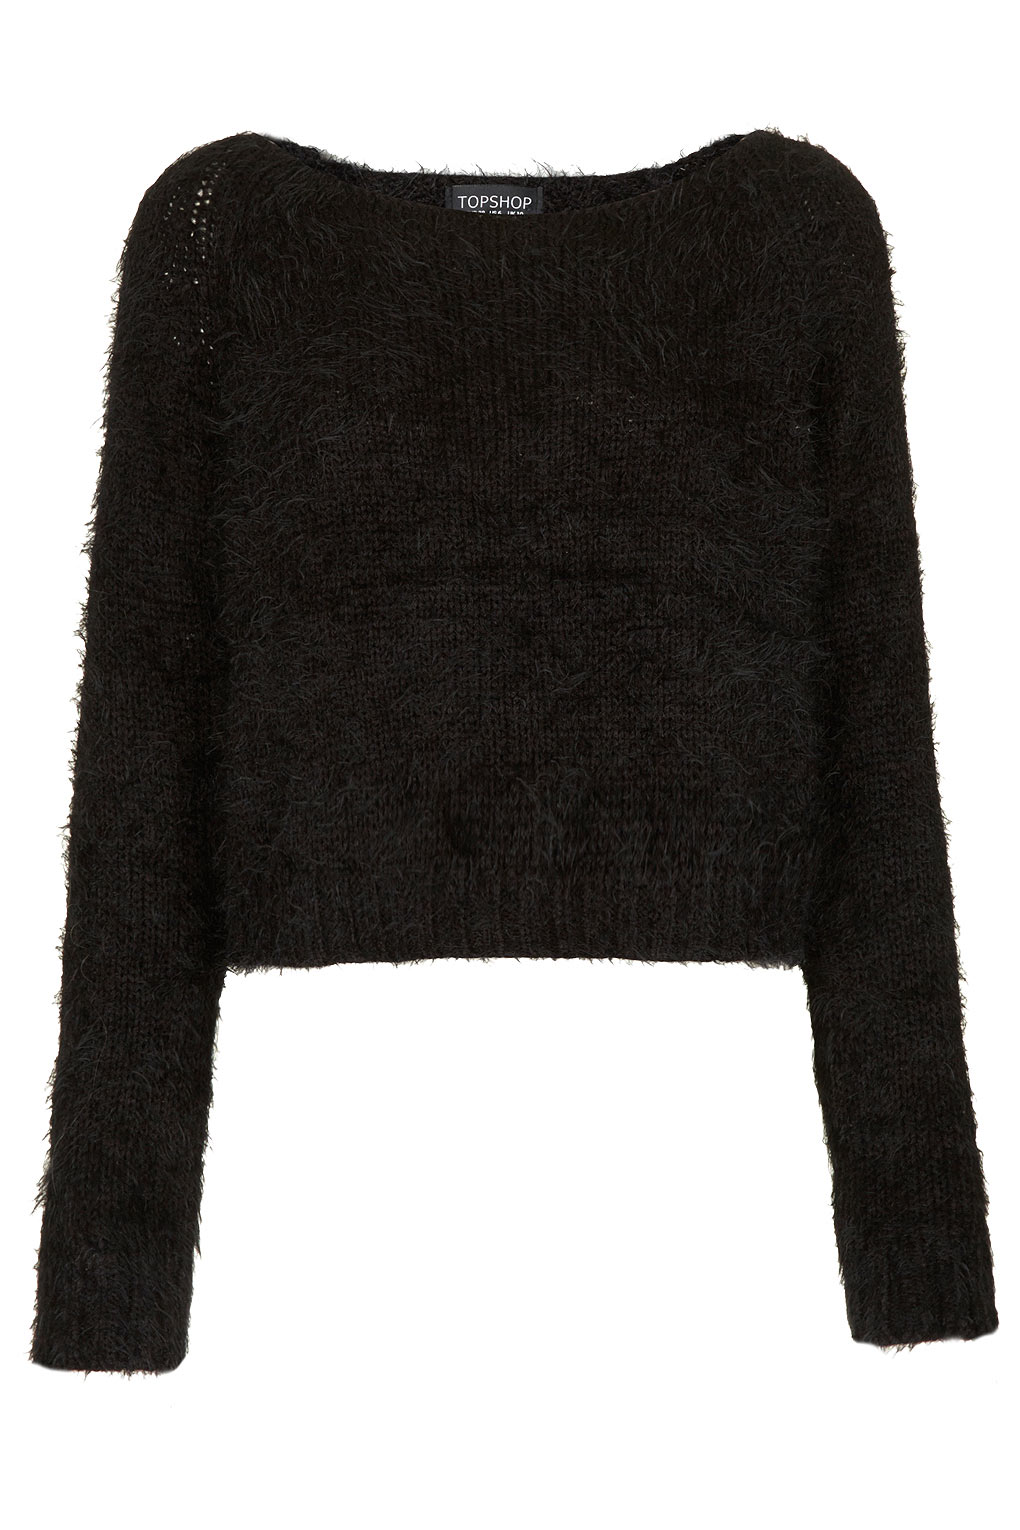 Topshop Knitted Fluffy Crop in Black Lyst